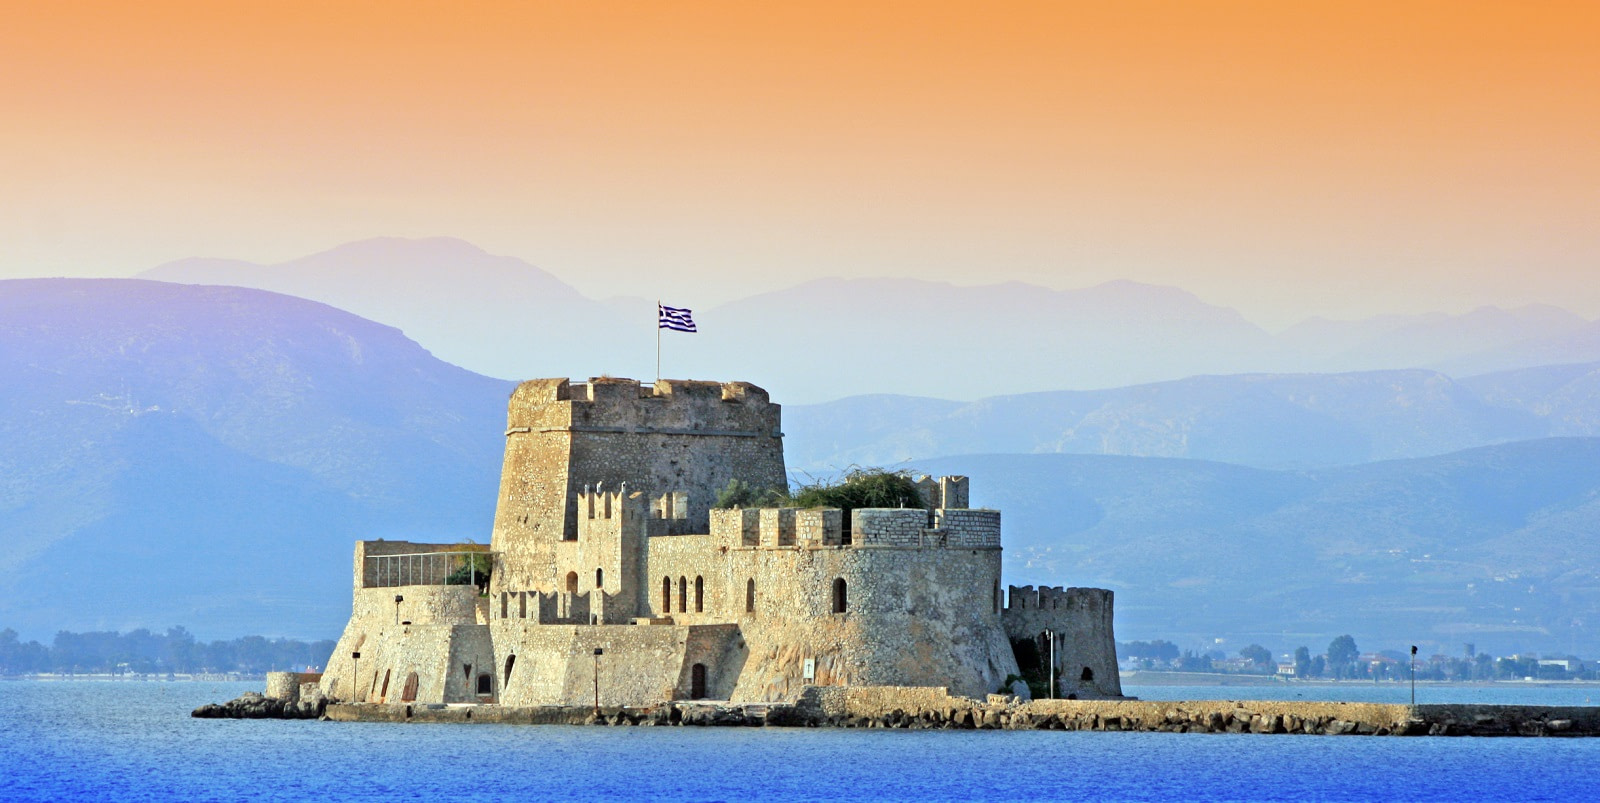 Nafplion Excursion, Greece